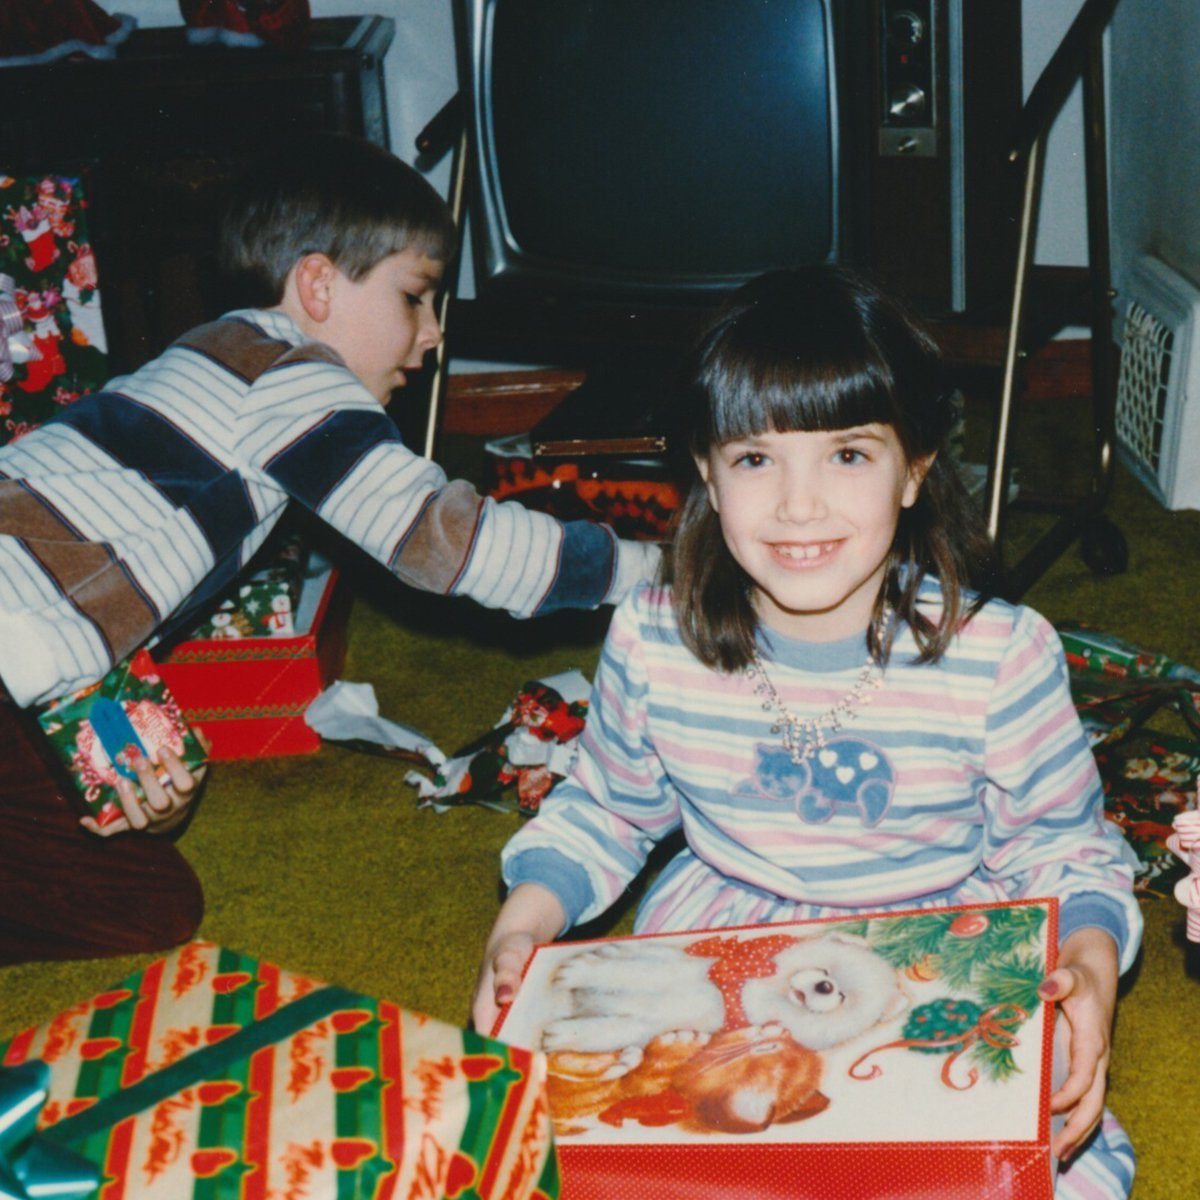 Boy and a girl opening a sea of Christmas presents